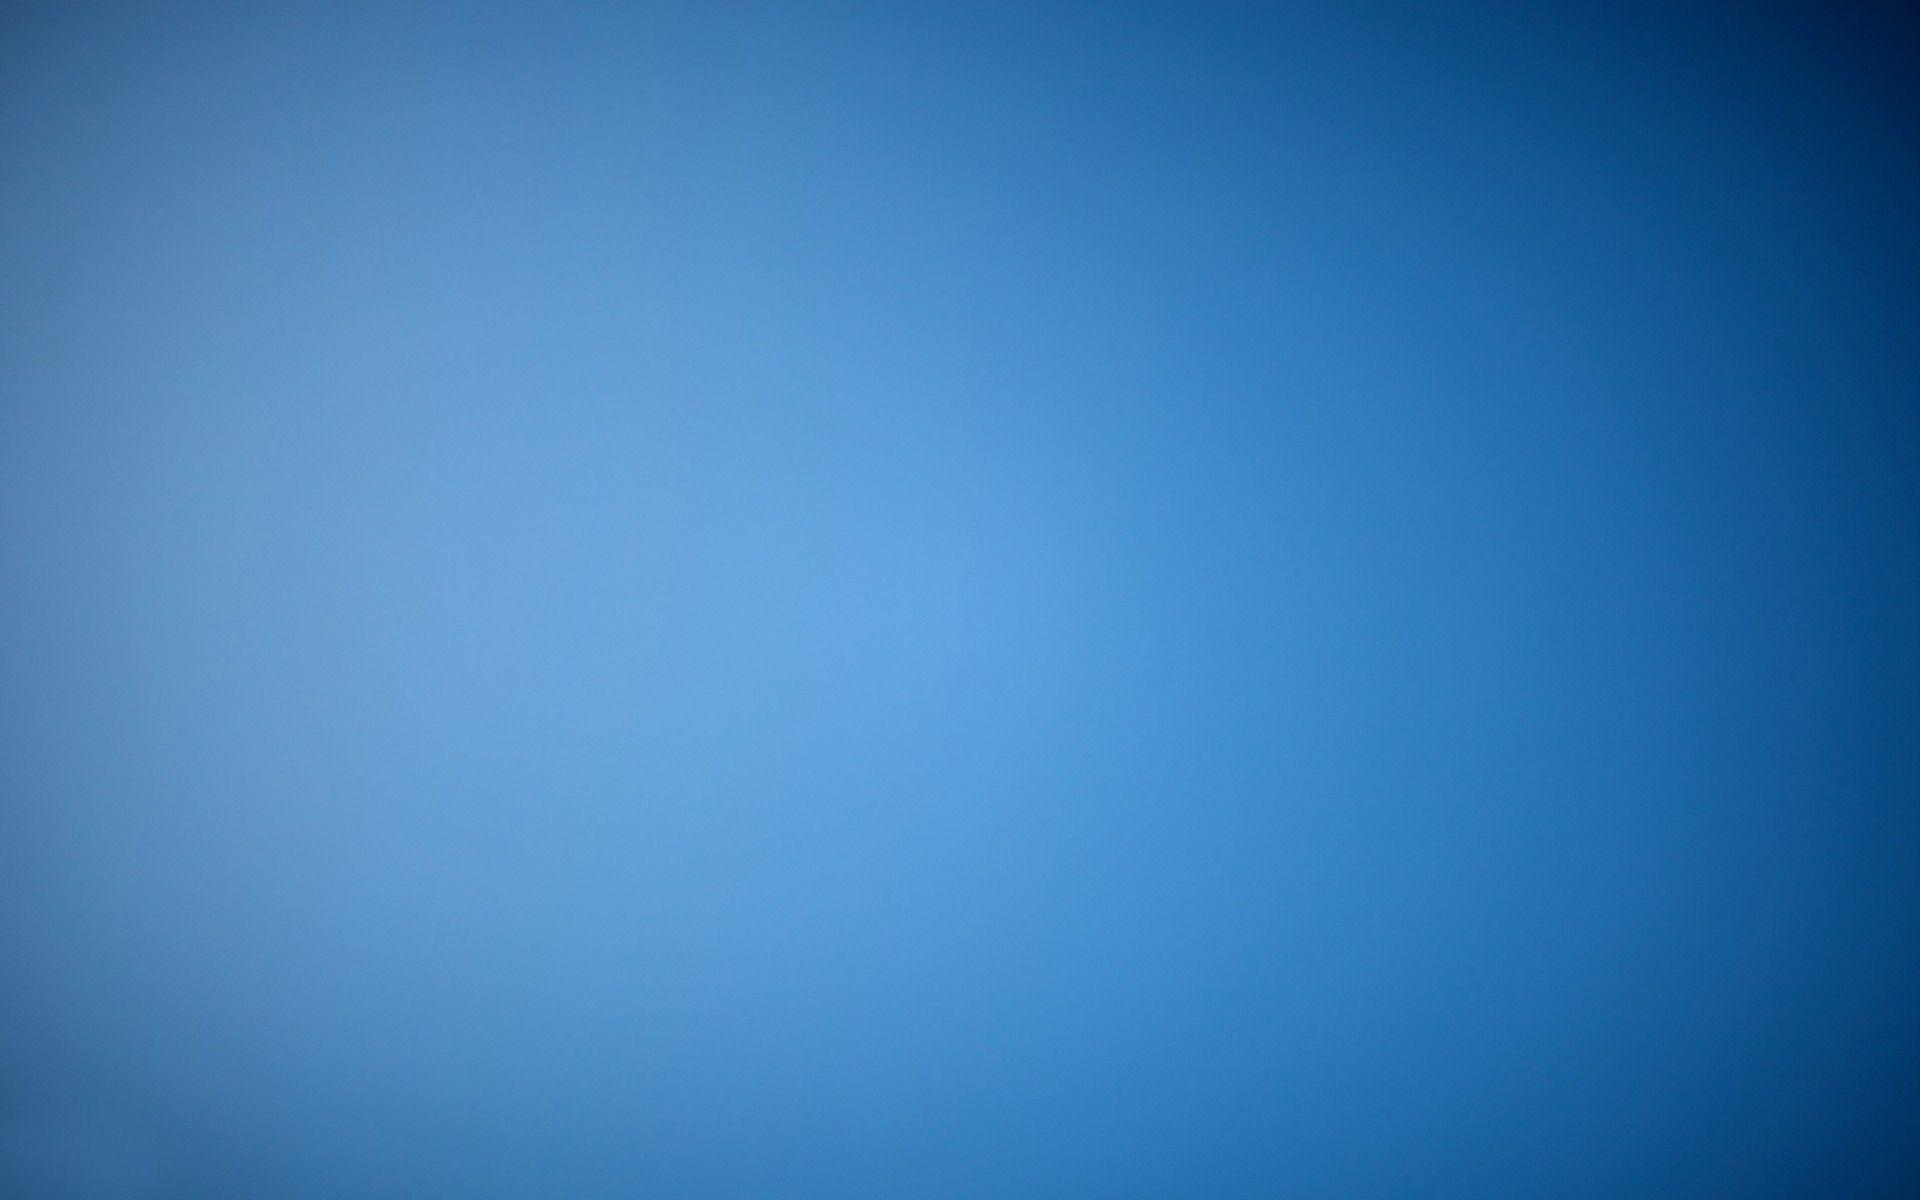 Blue Gradient Wallpapers